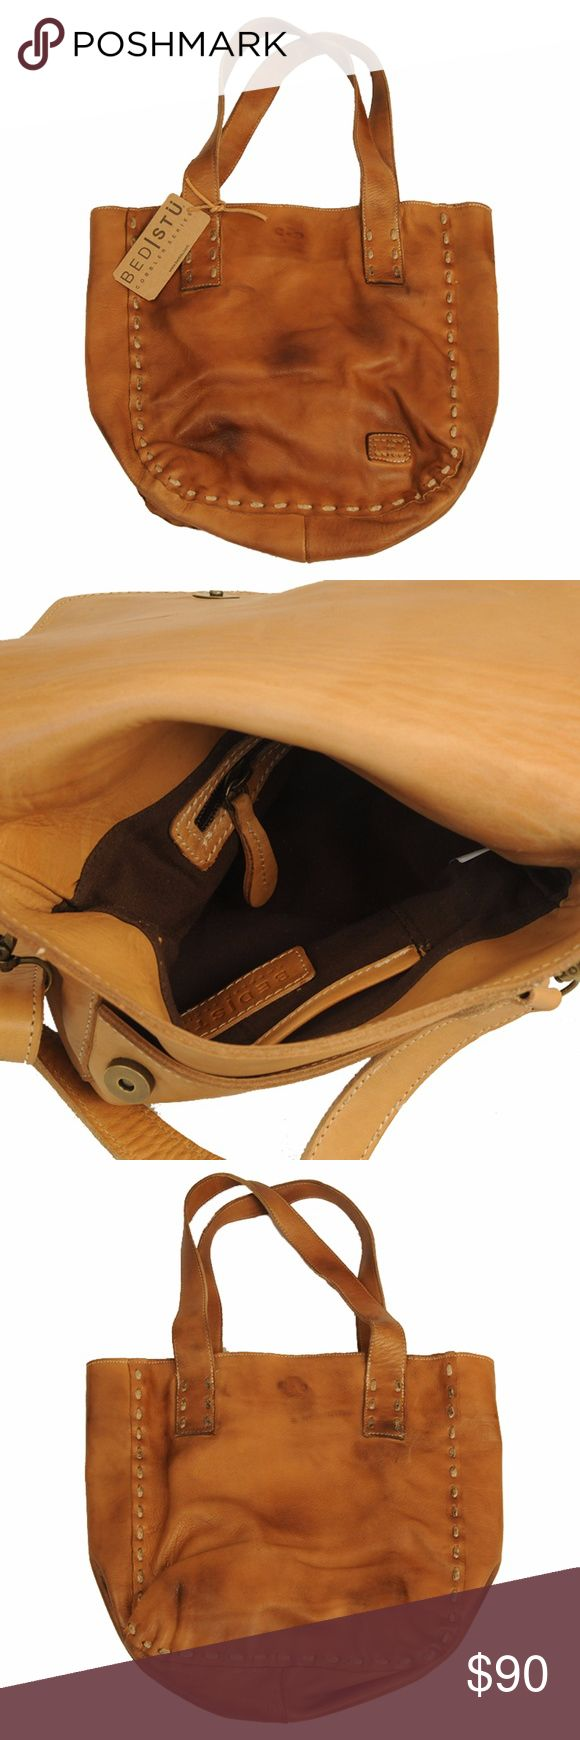 Bed Stu Women's Stevie Bag Tan Glove NEW New in plastic bag  Never Used   Leather Imported Blaze style trails and turn heads in this rustic Stevie Tote from Bedstu™. Heavily distressed leather tote with exaggerated stitching accents. Open closure. Dual flat shoulder straps. Flat bottom supports upright structure.  Lined interior with back wall zip pocket. Imported.   Bed Stu Belt Size Guide Measurements: Bottom Width: 11 in Depth: 3 1⁄4 in Height: 12 in Strap Length: 22 in Strap Drop: 10 in…